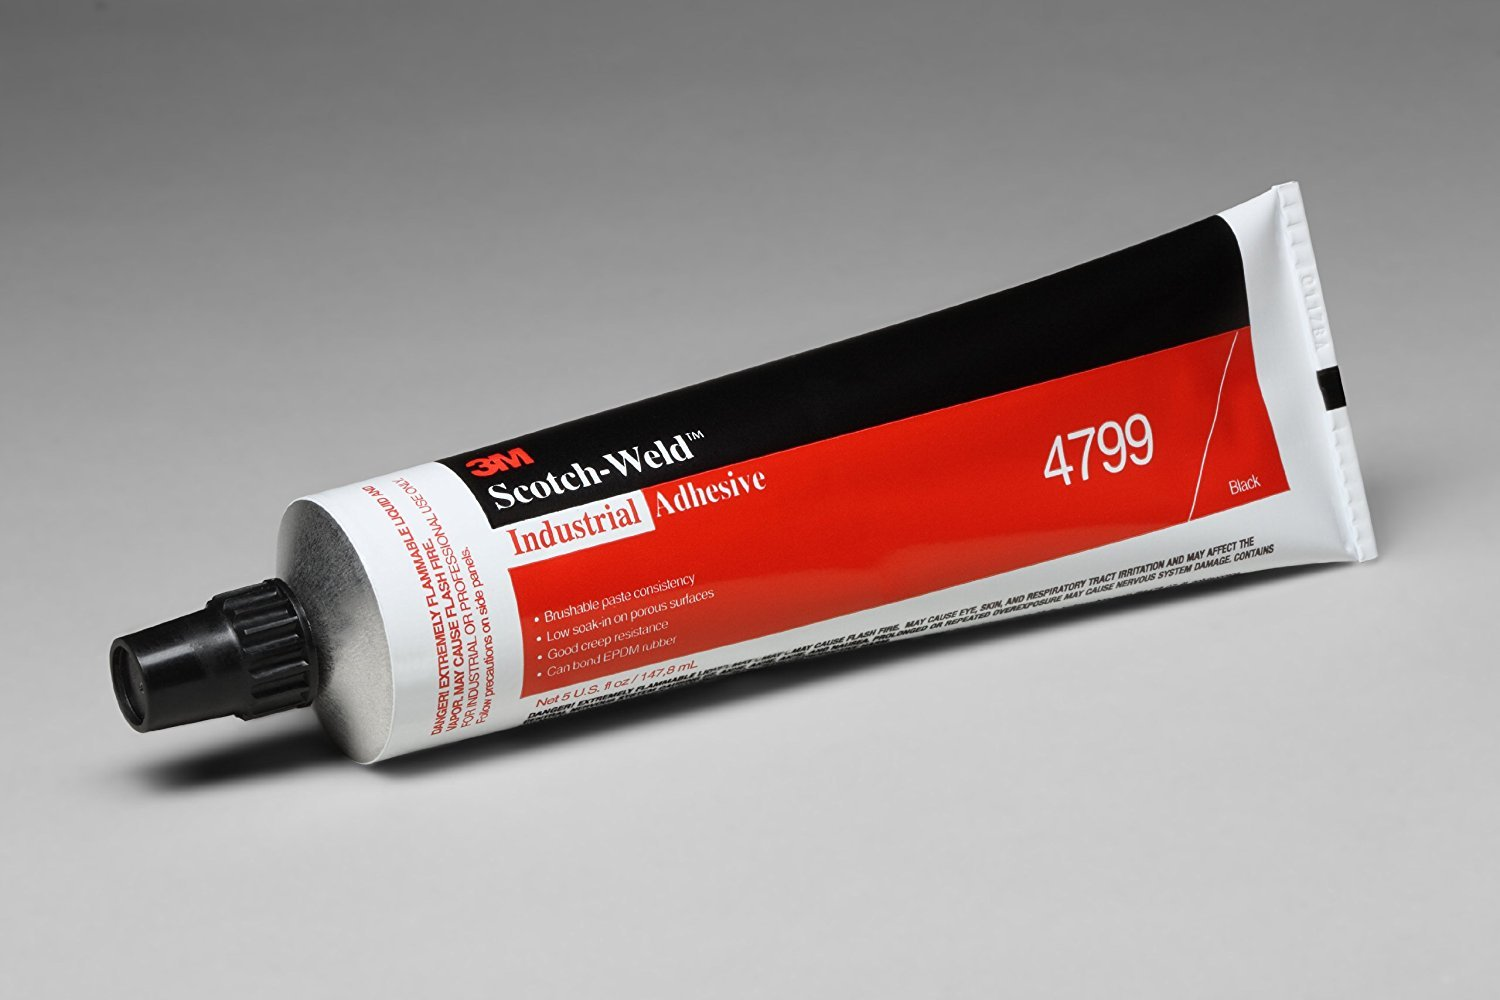 3M 4799 Black Industrial Adhesive, 5 Ounce